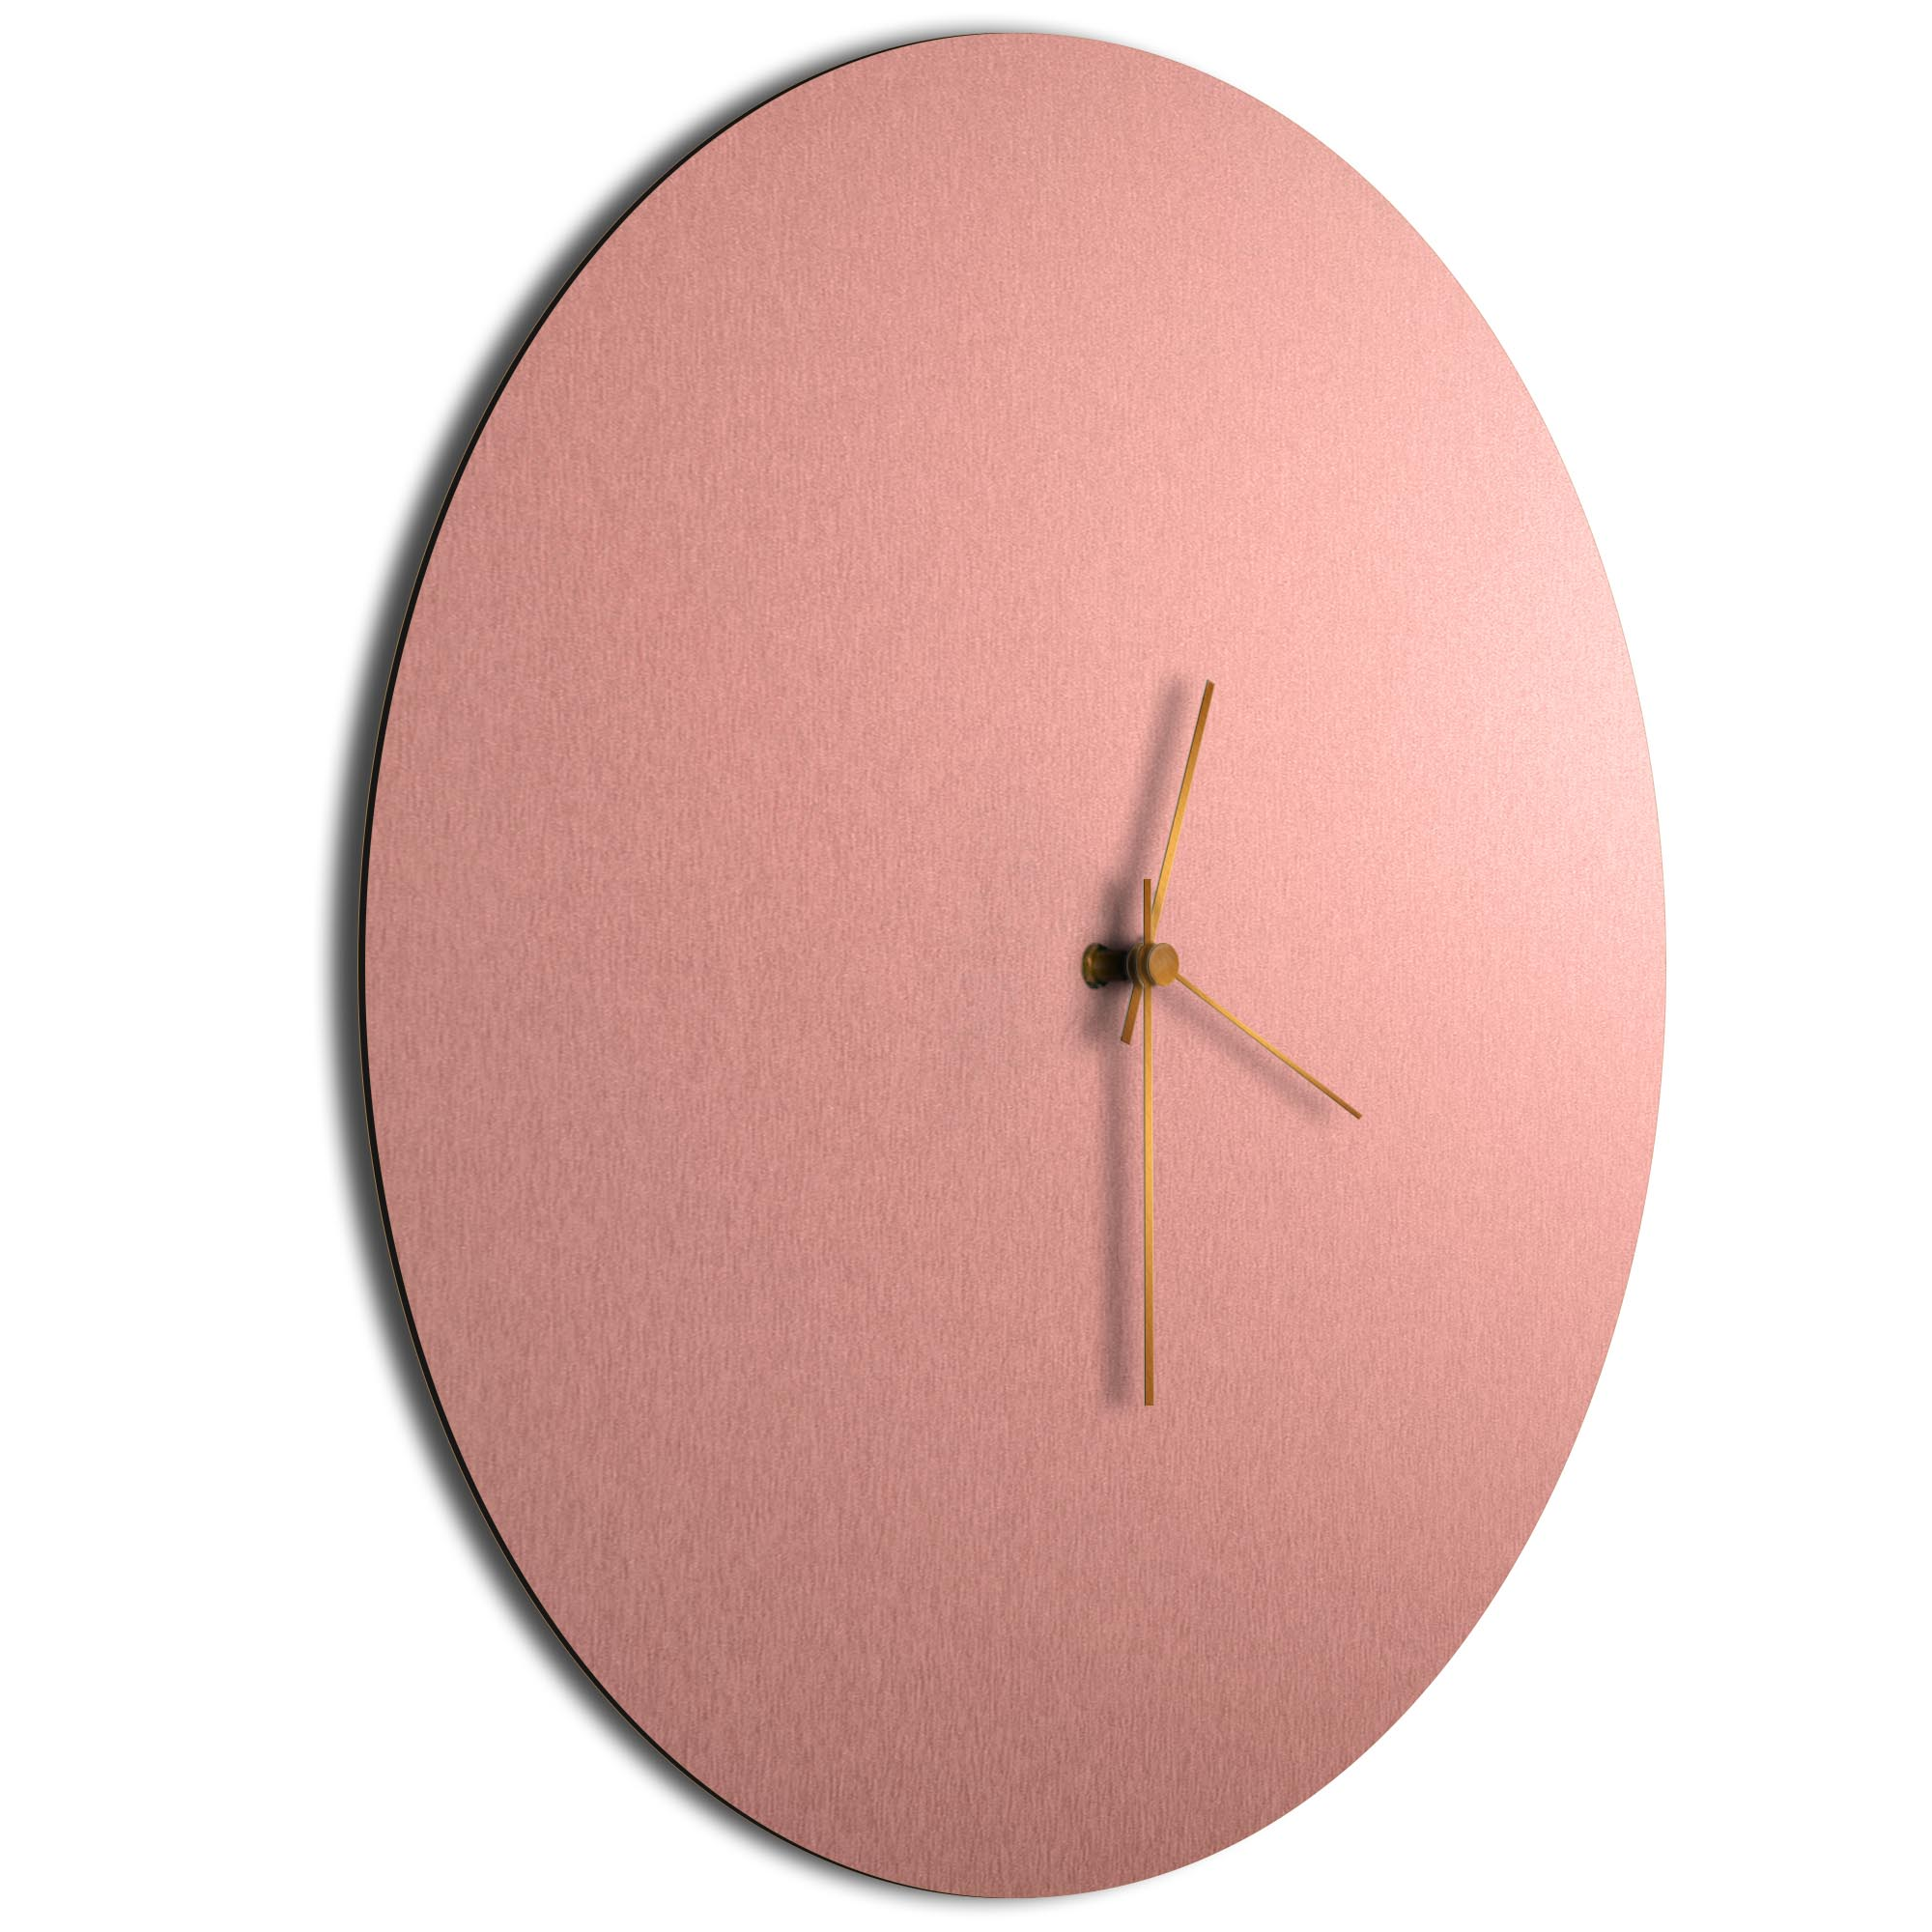 Coppersmith Circle Clock Large Bronze - Image 2